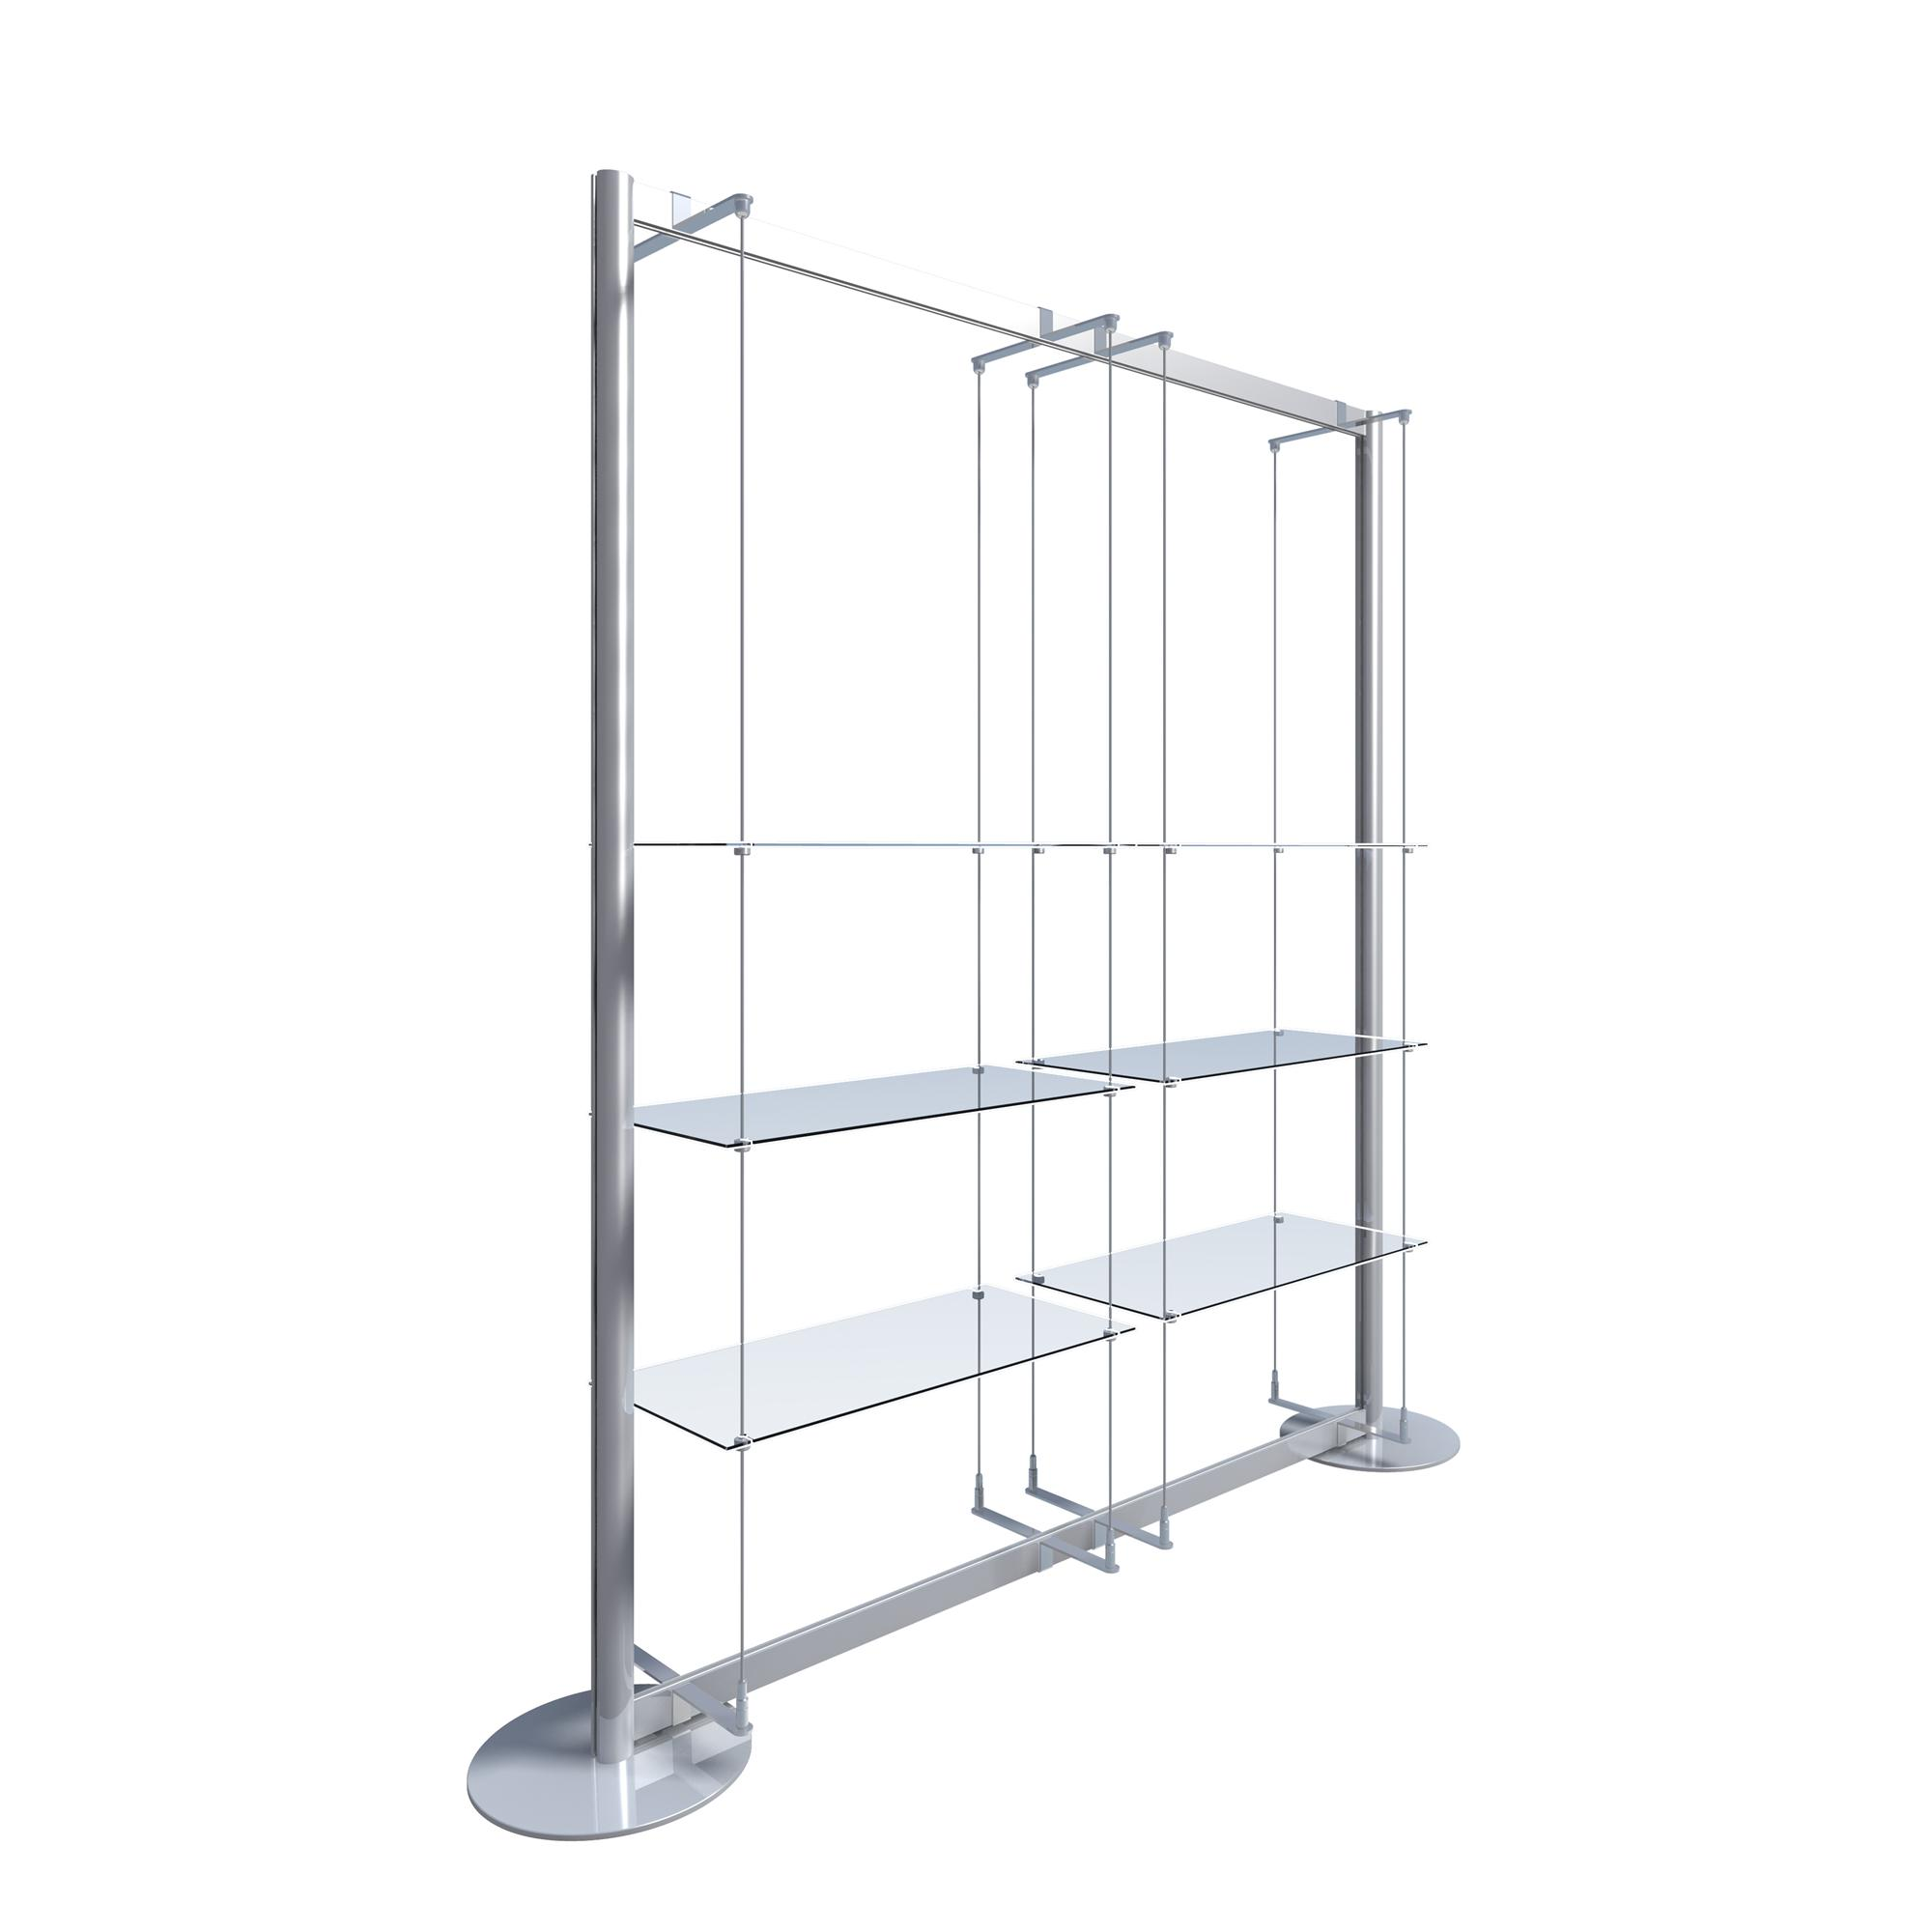 freestanding display with 6 glass shelves u003e freestanding window rh shopequip co uk hanging window display shelves salon window display shelves